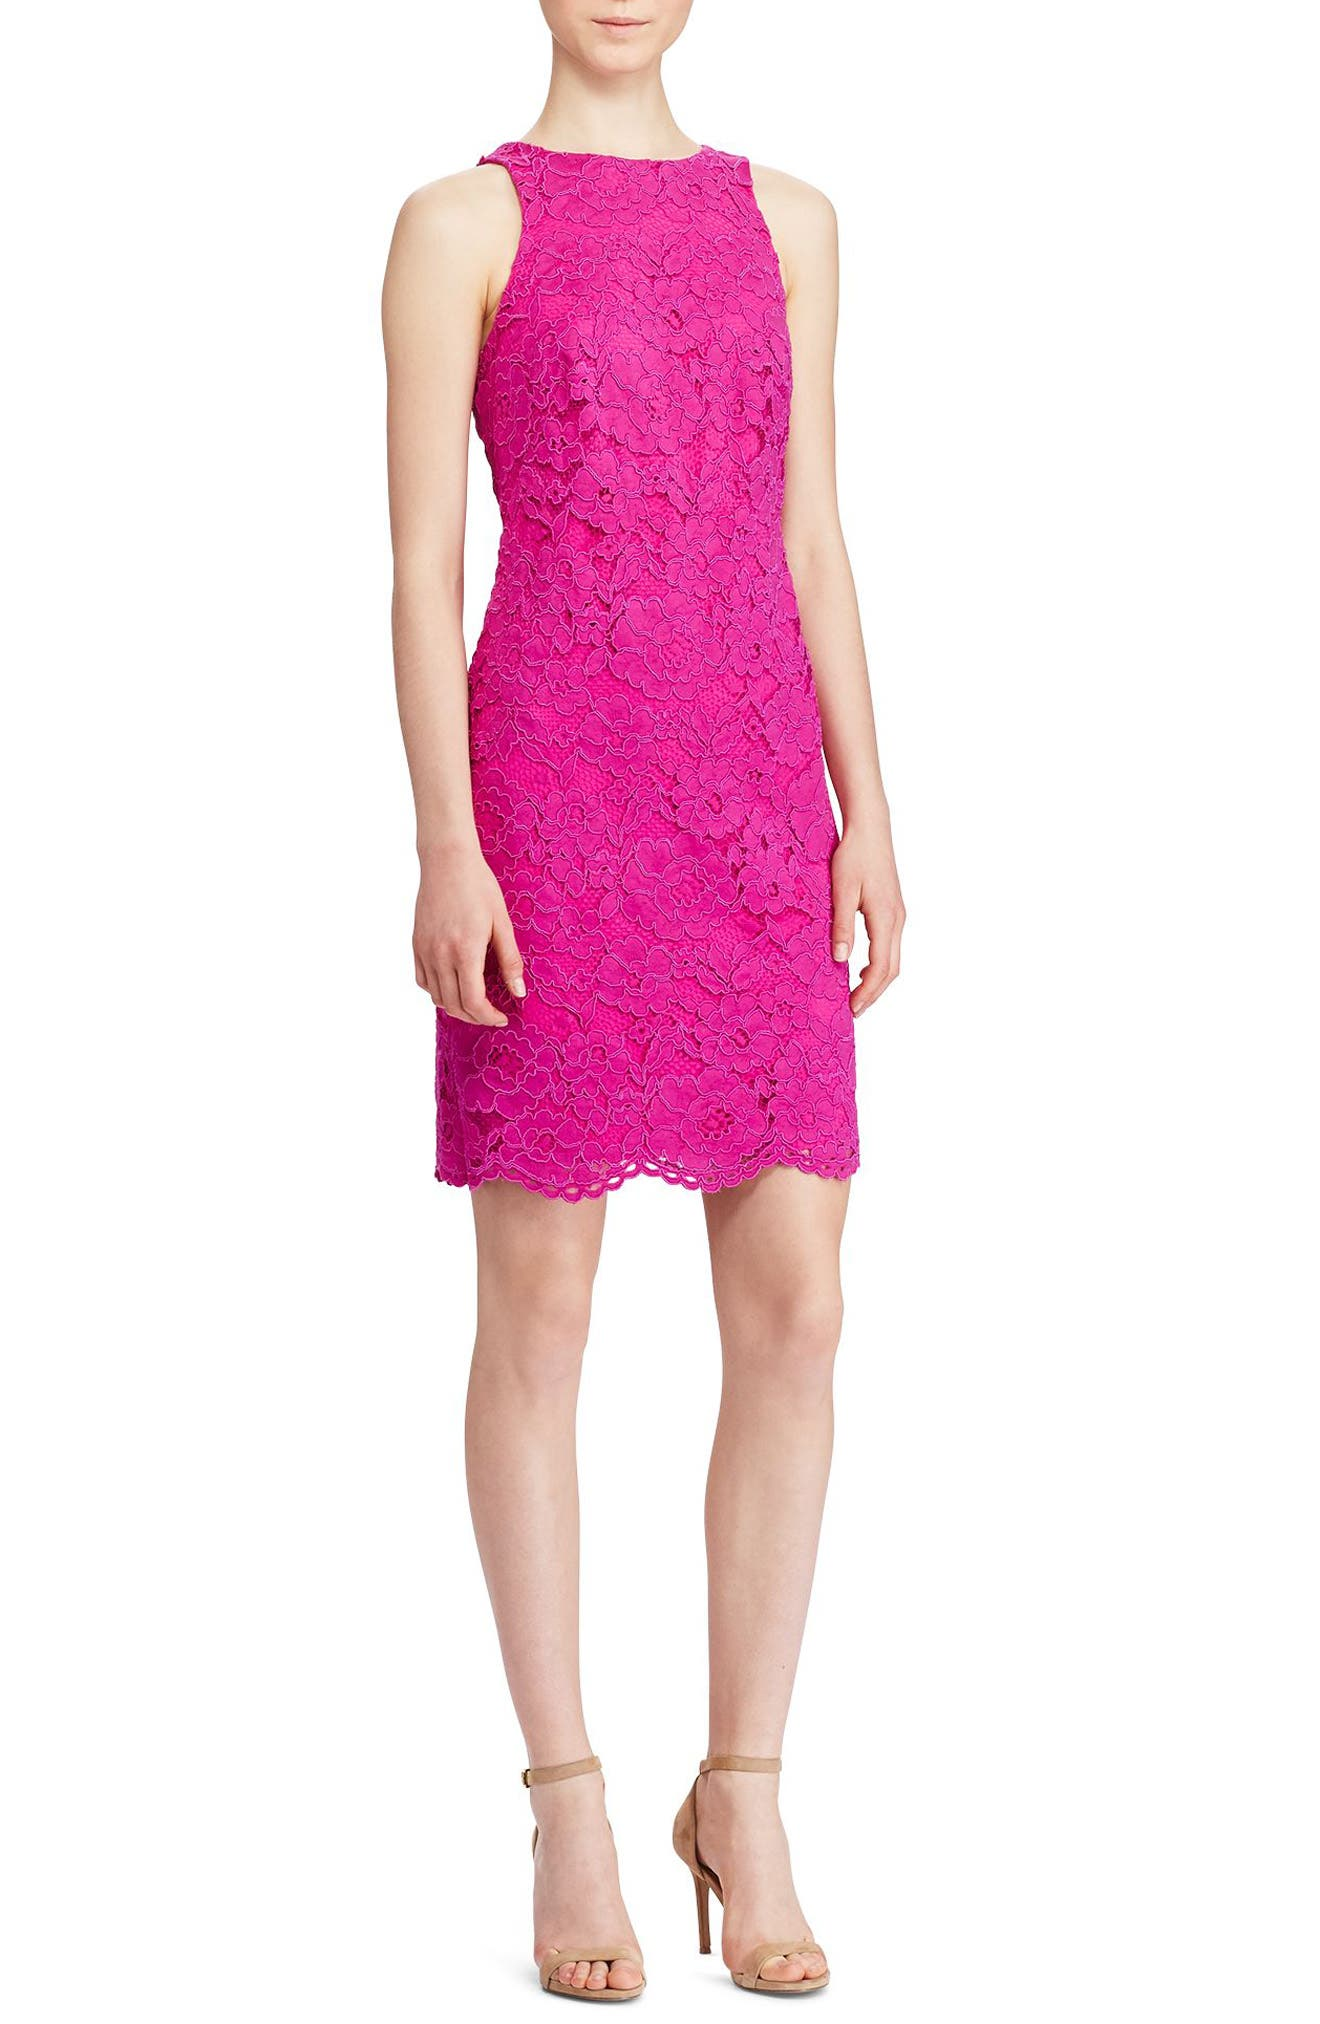 Lauren Ralph Lauren Corded Lace Dress